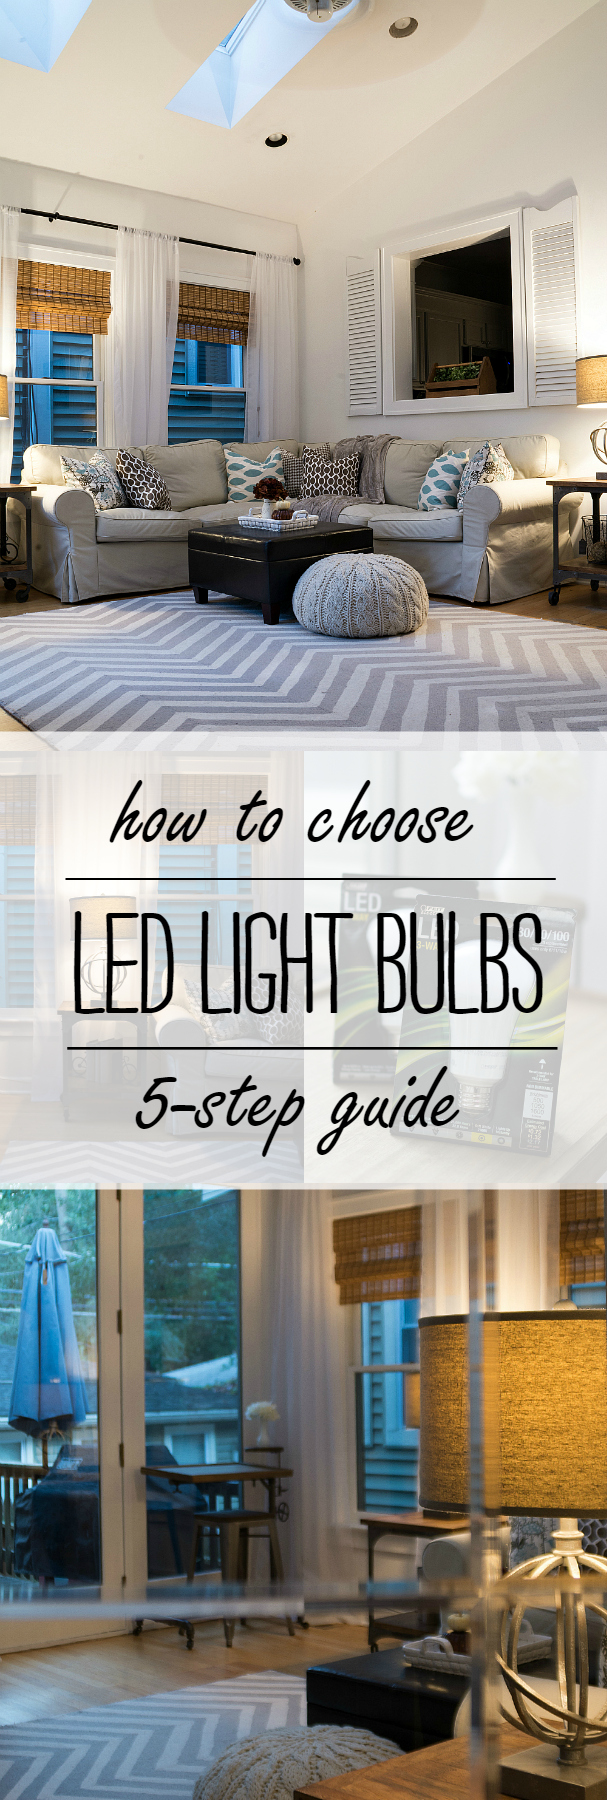 LED Light Bulbs: How To Choose